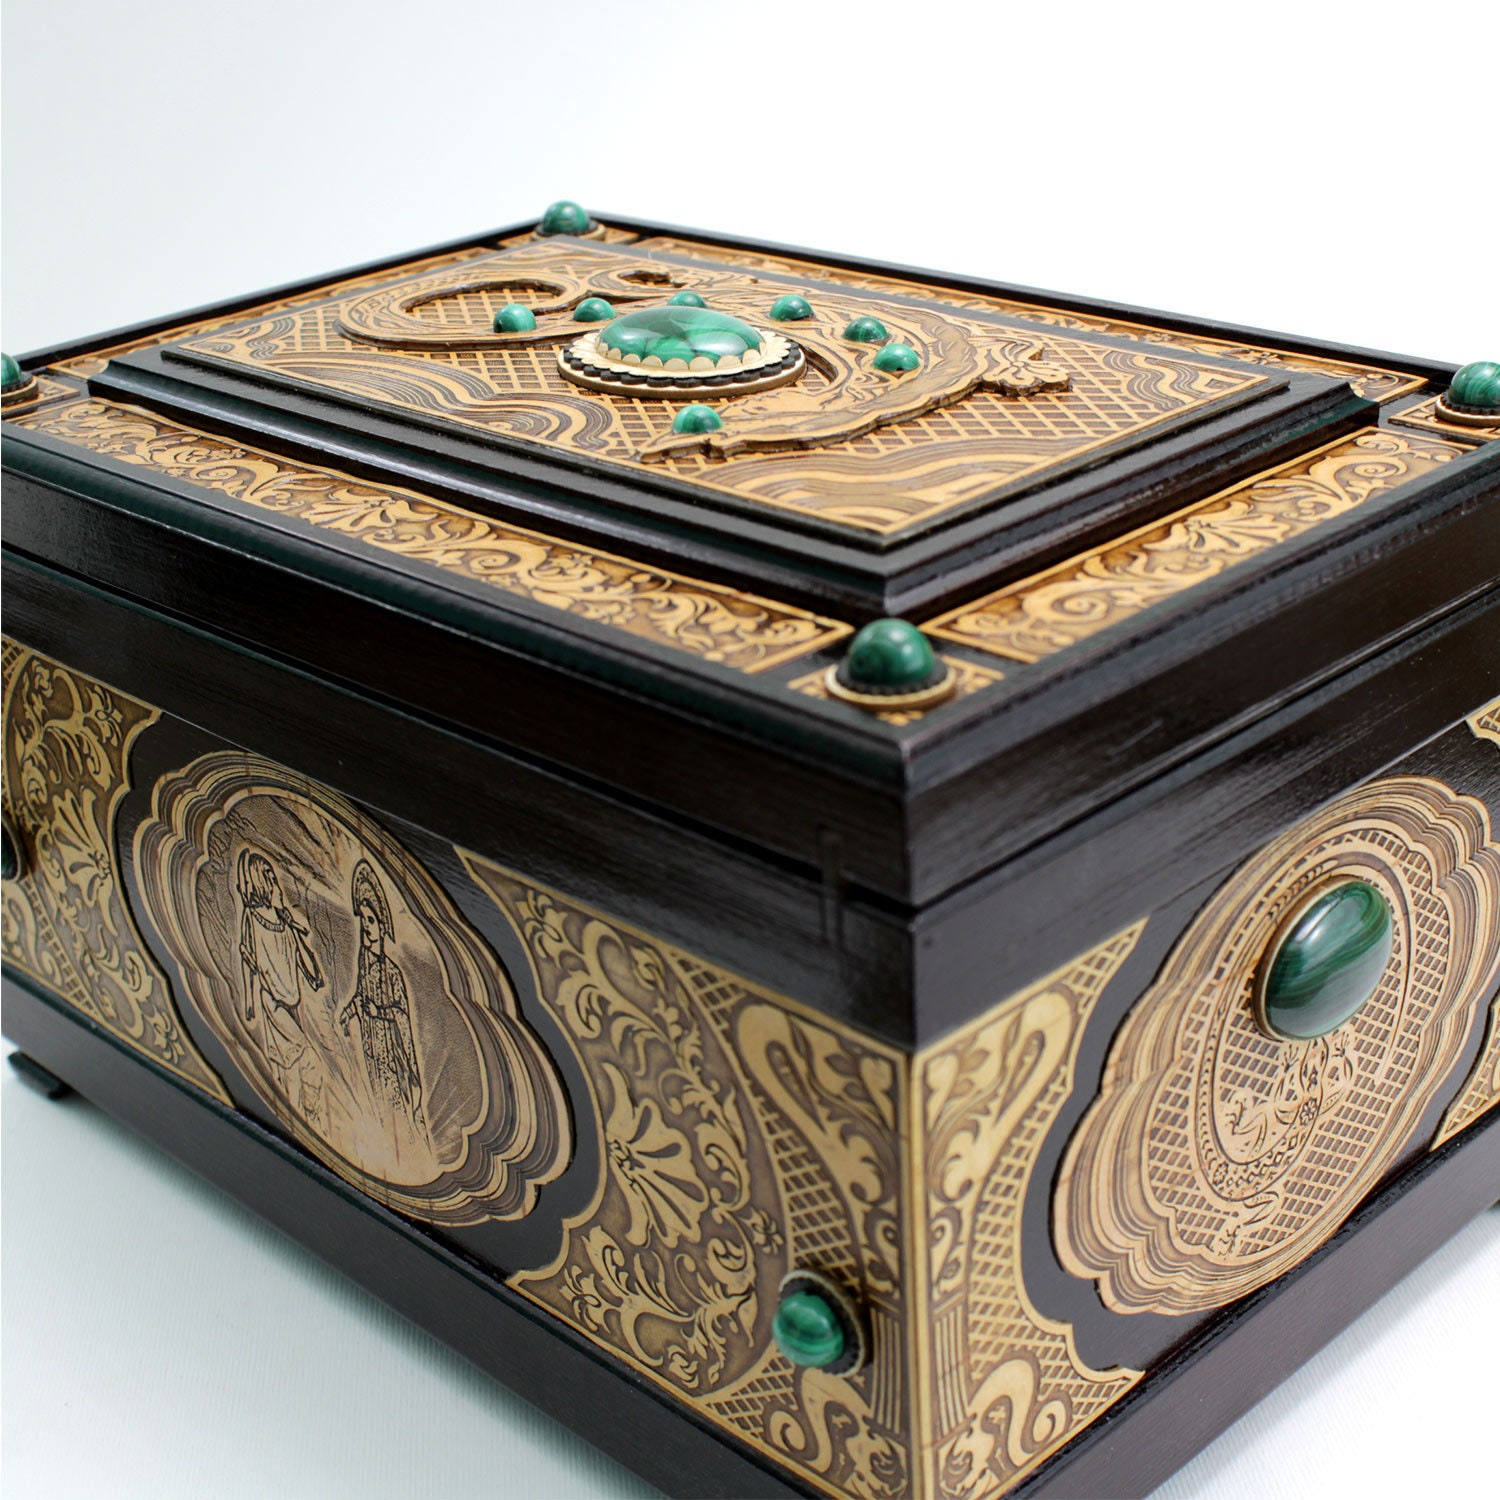 Large wooden chest inlaid with malachite and birch bark. Jewelry box with two tiers and cells with soft velvet at the bottom.Malachite Chest